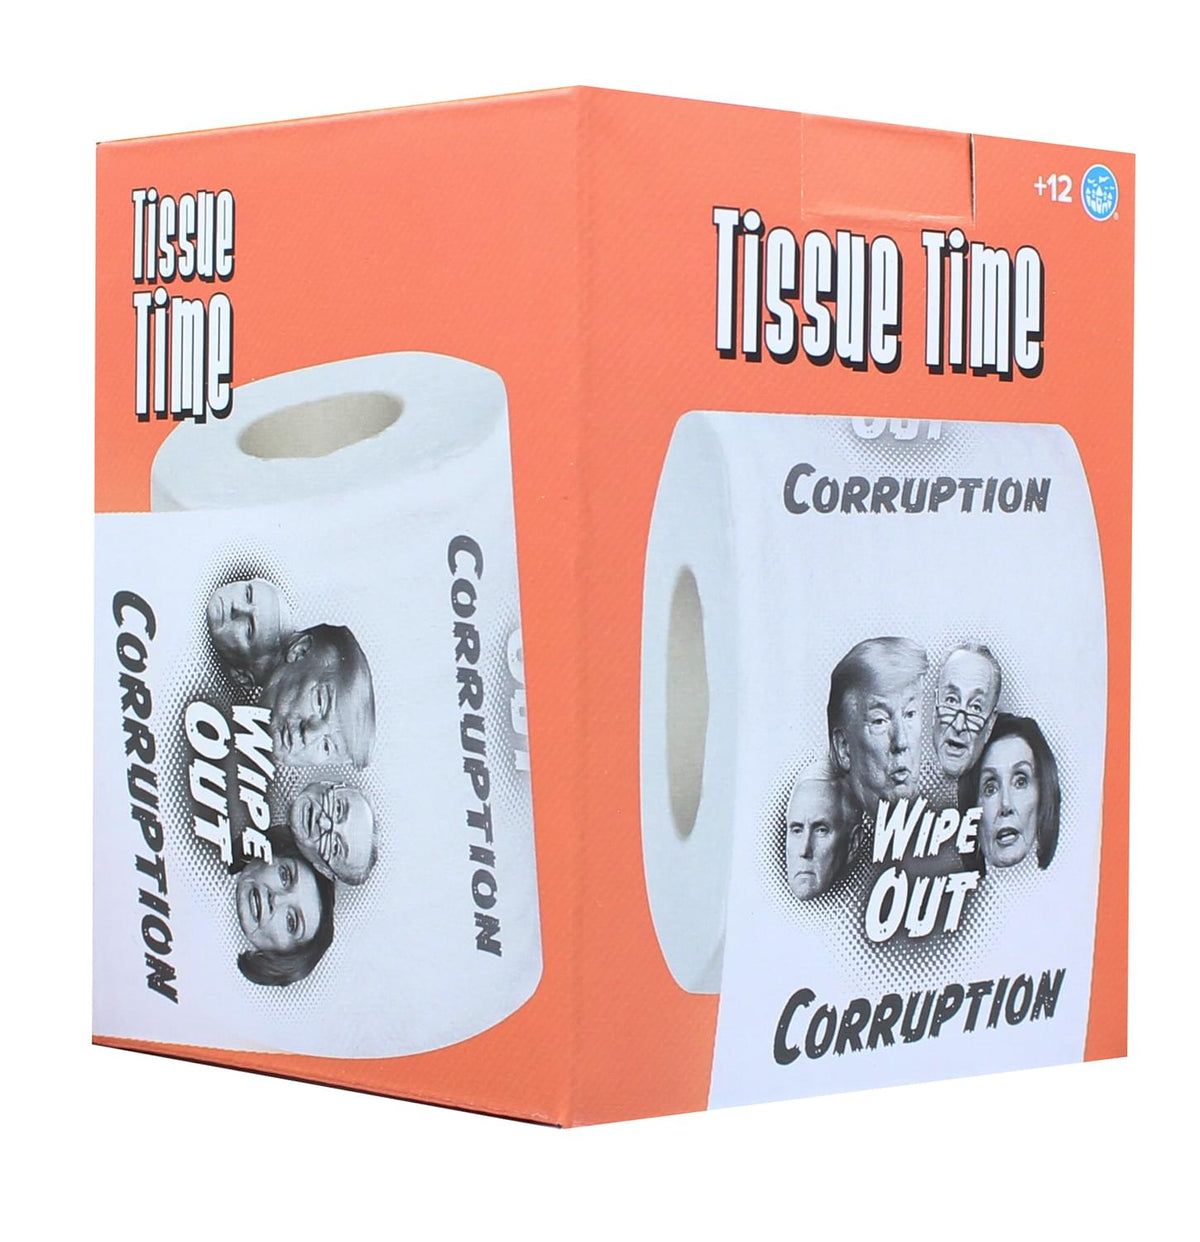 Tissue Time Wipe Out Corruption Novelty Toilet Paper | One Roll